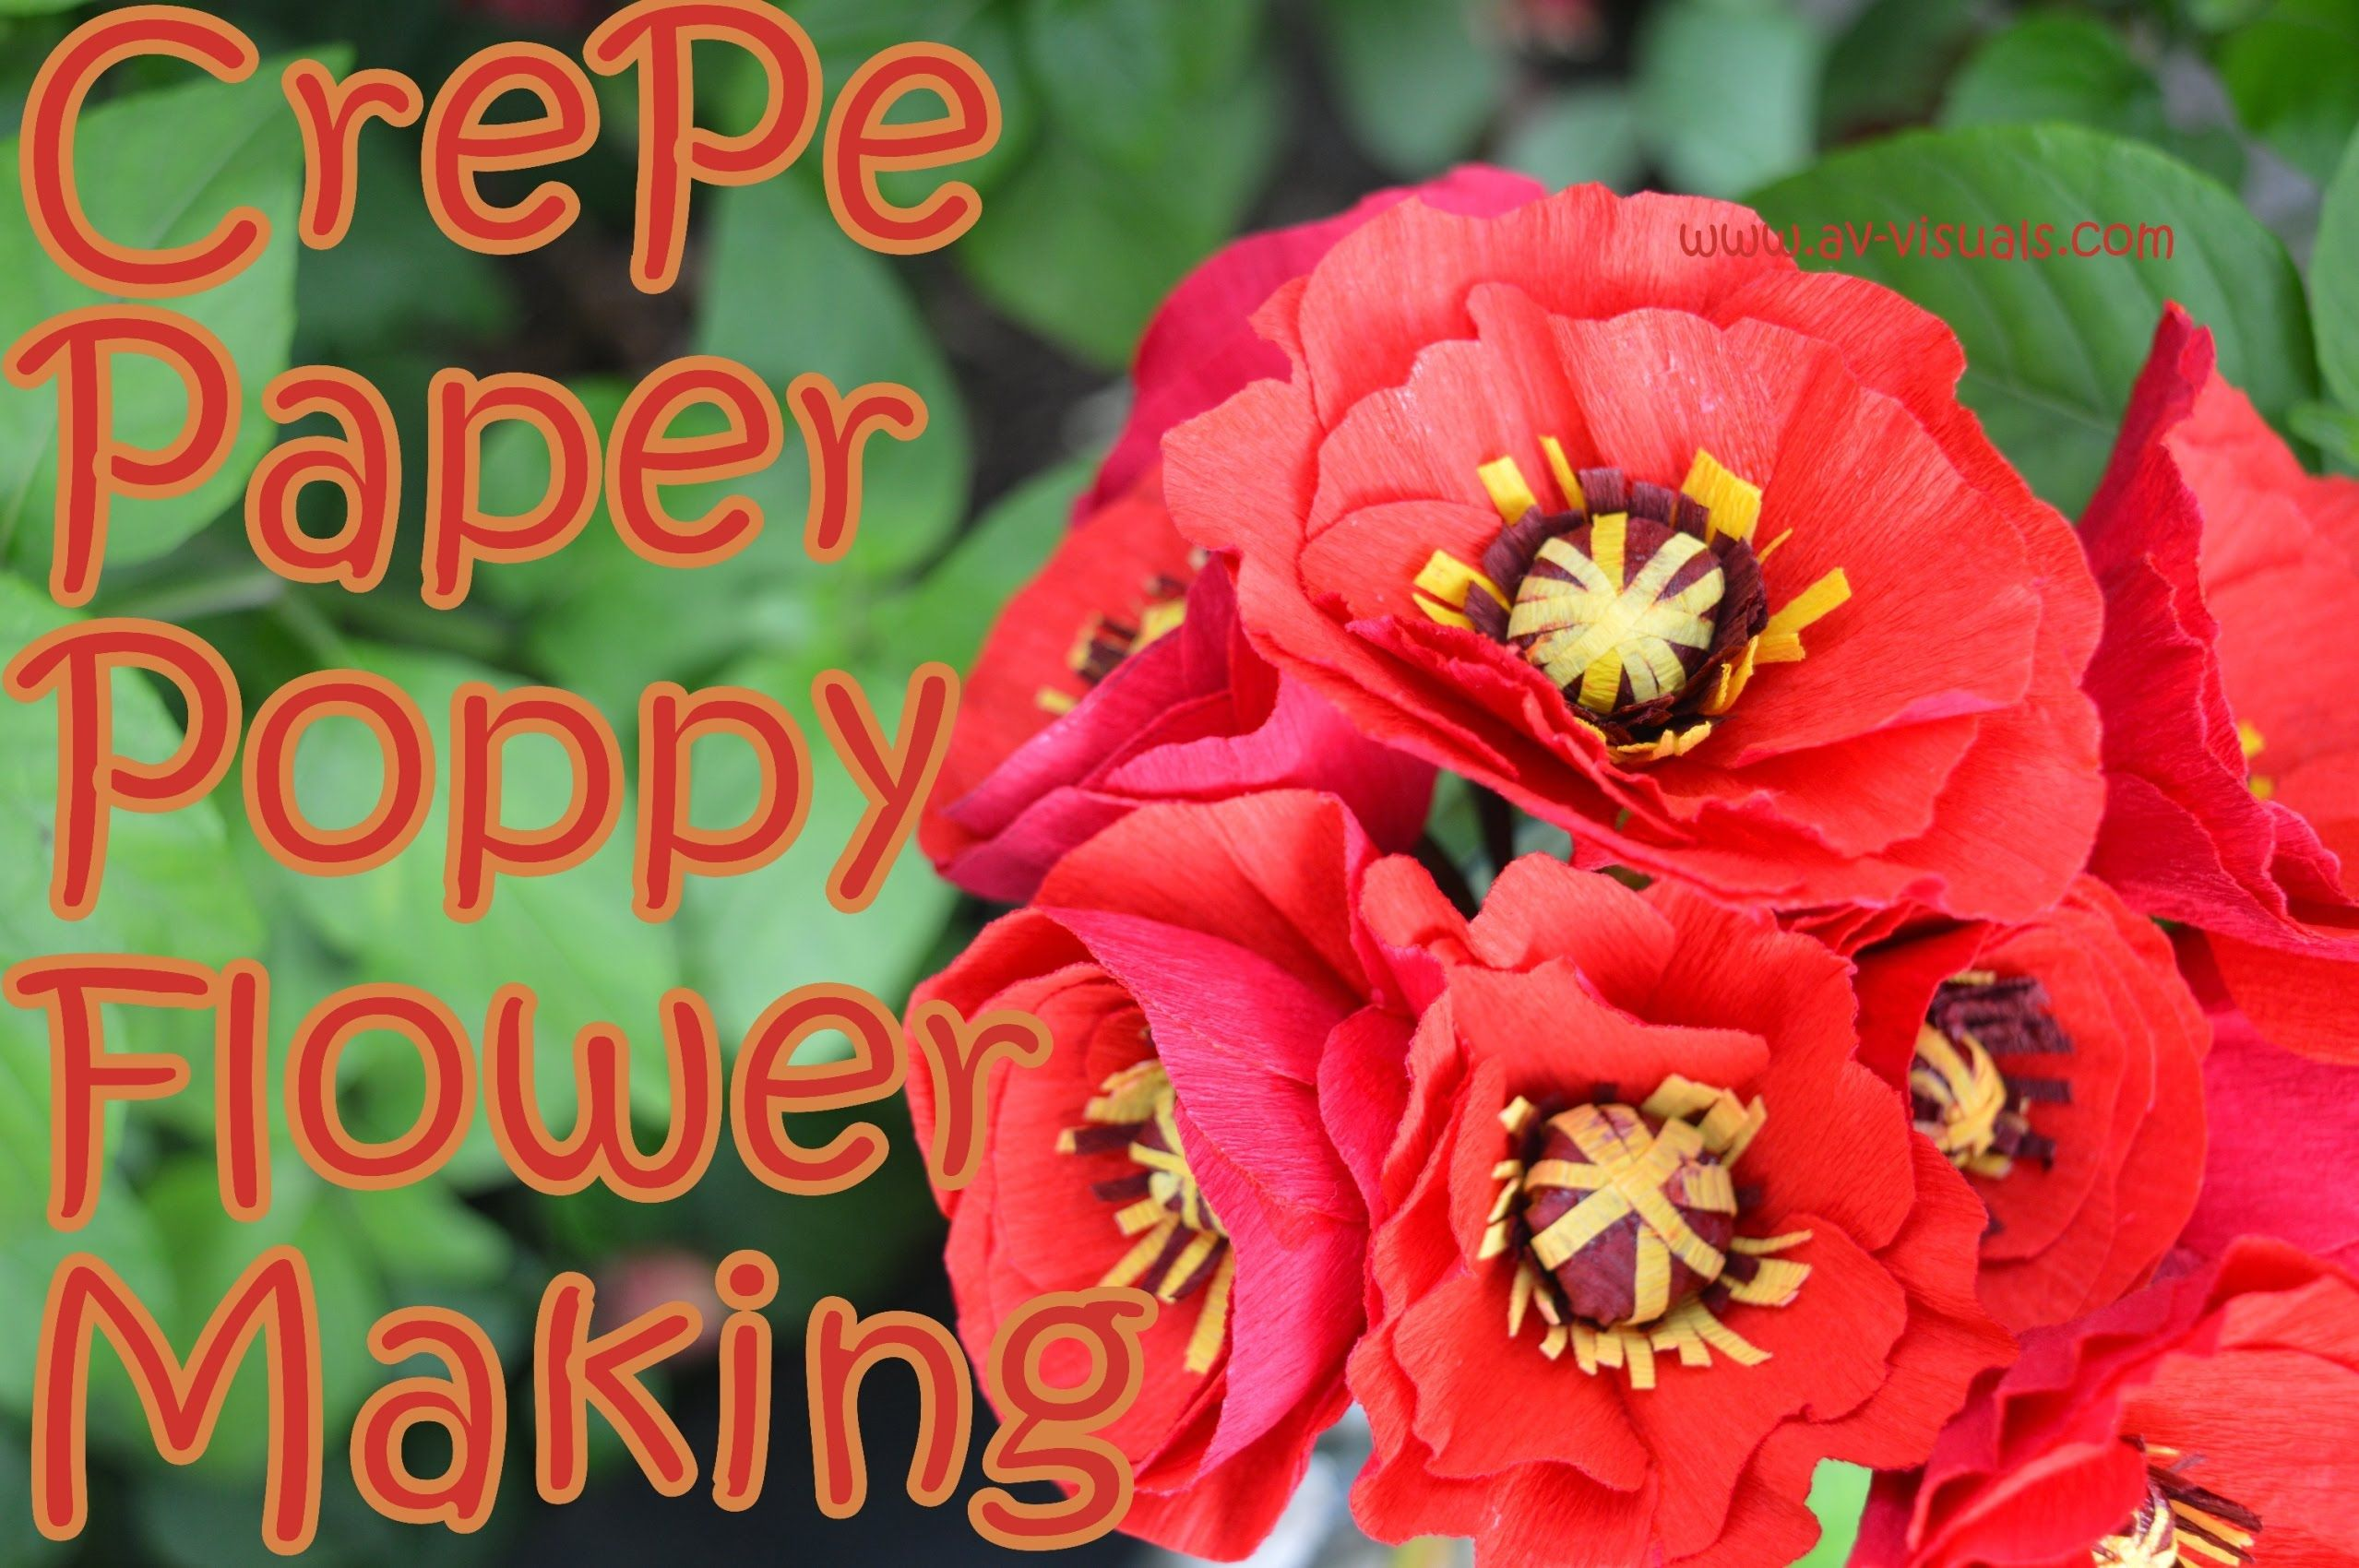 Learn how to make crepe paper red poppy flowers at home easy step learn how to make crepe paper red poppy flowers at home easy step by step mightylinksfo